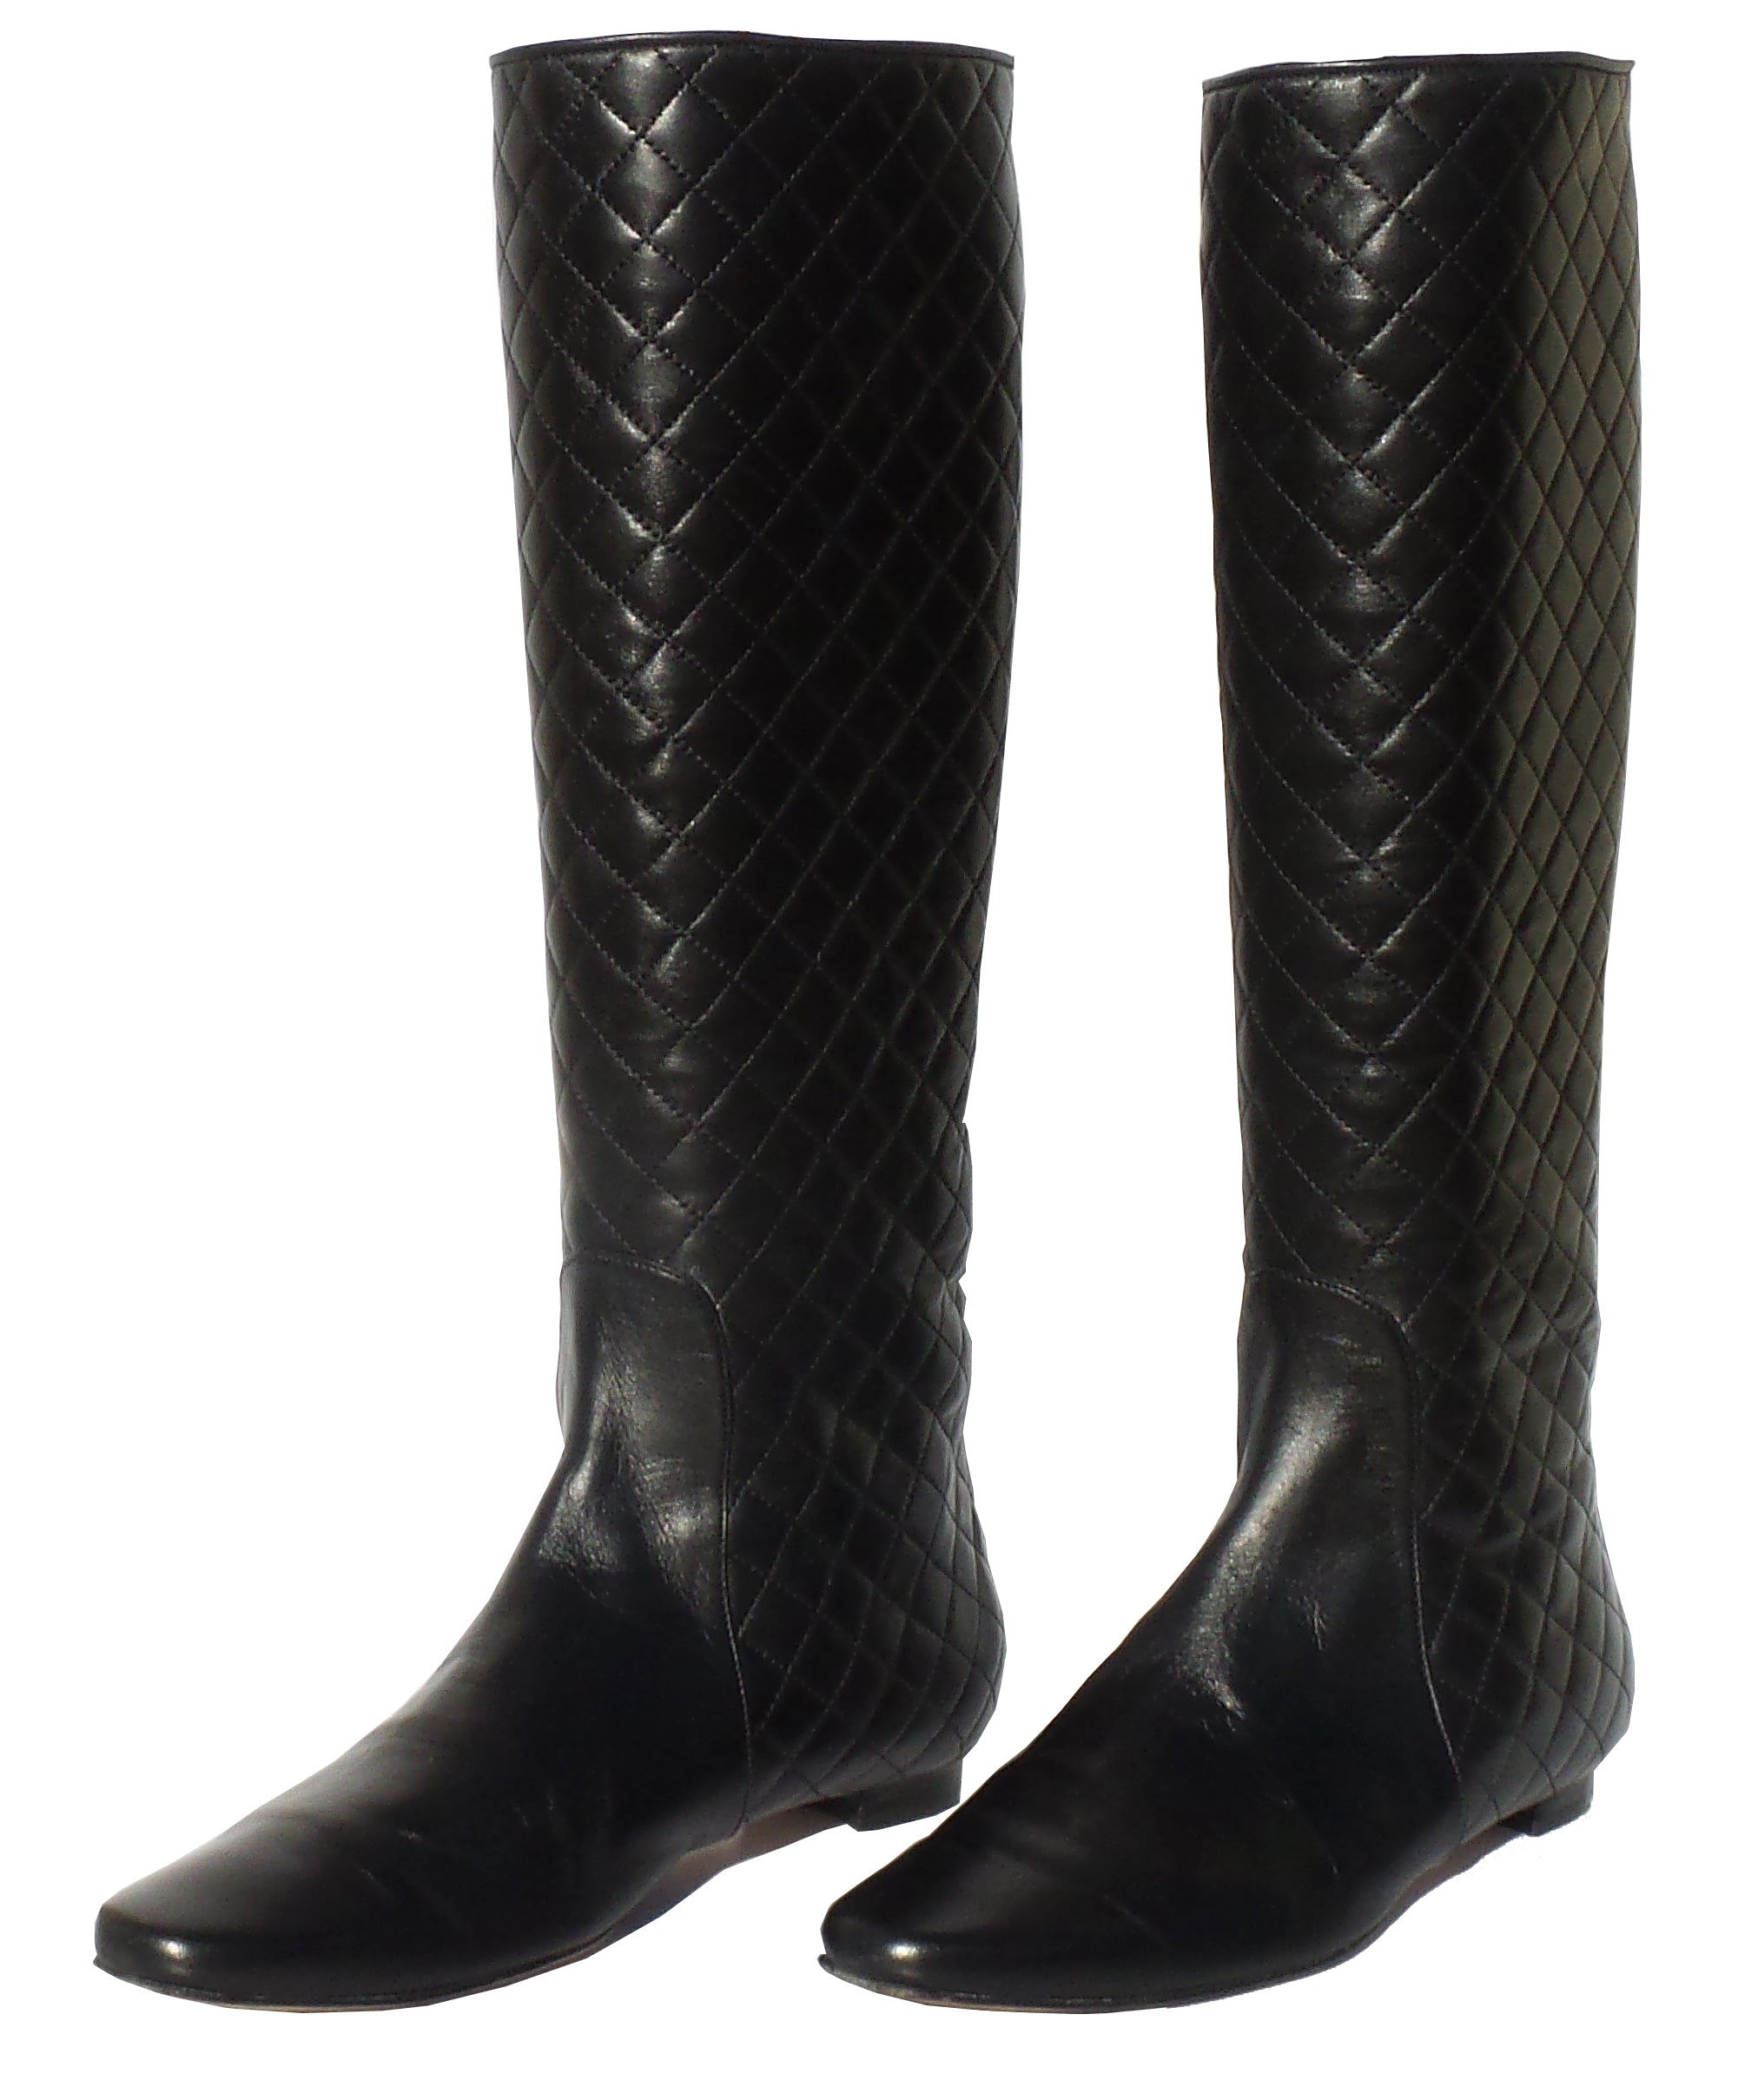 MANOLO BLAHNIK Irieboot Black Quilted Leather Tall Pull On Flat Riding Boots 38